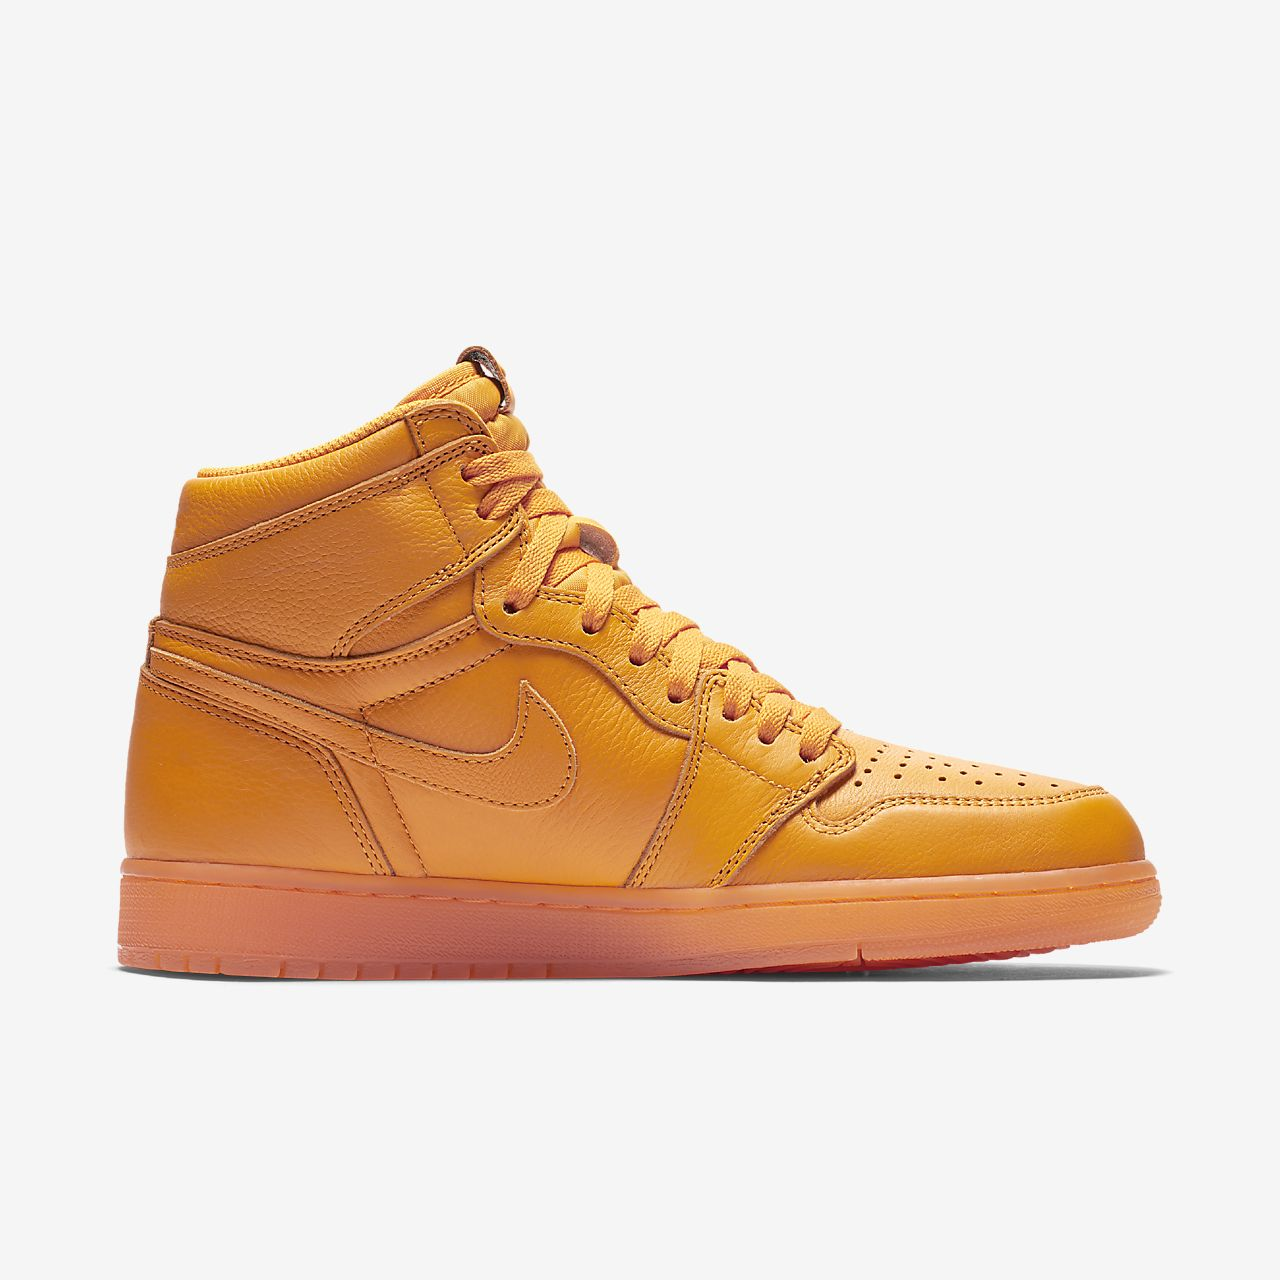 buy online 60375 56f3c ... Chaussure Air Jordan 1 Retro High OG « Orange » pour Homme